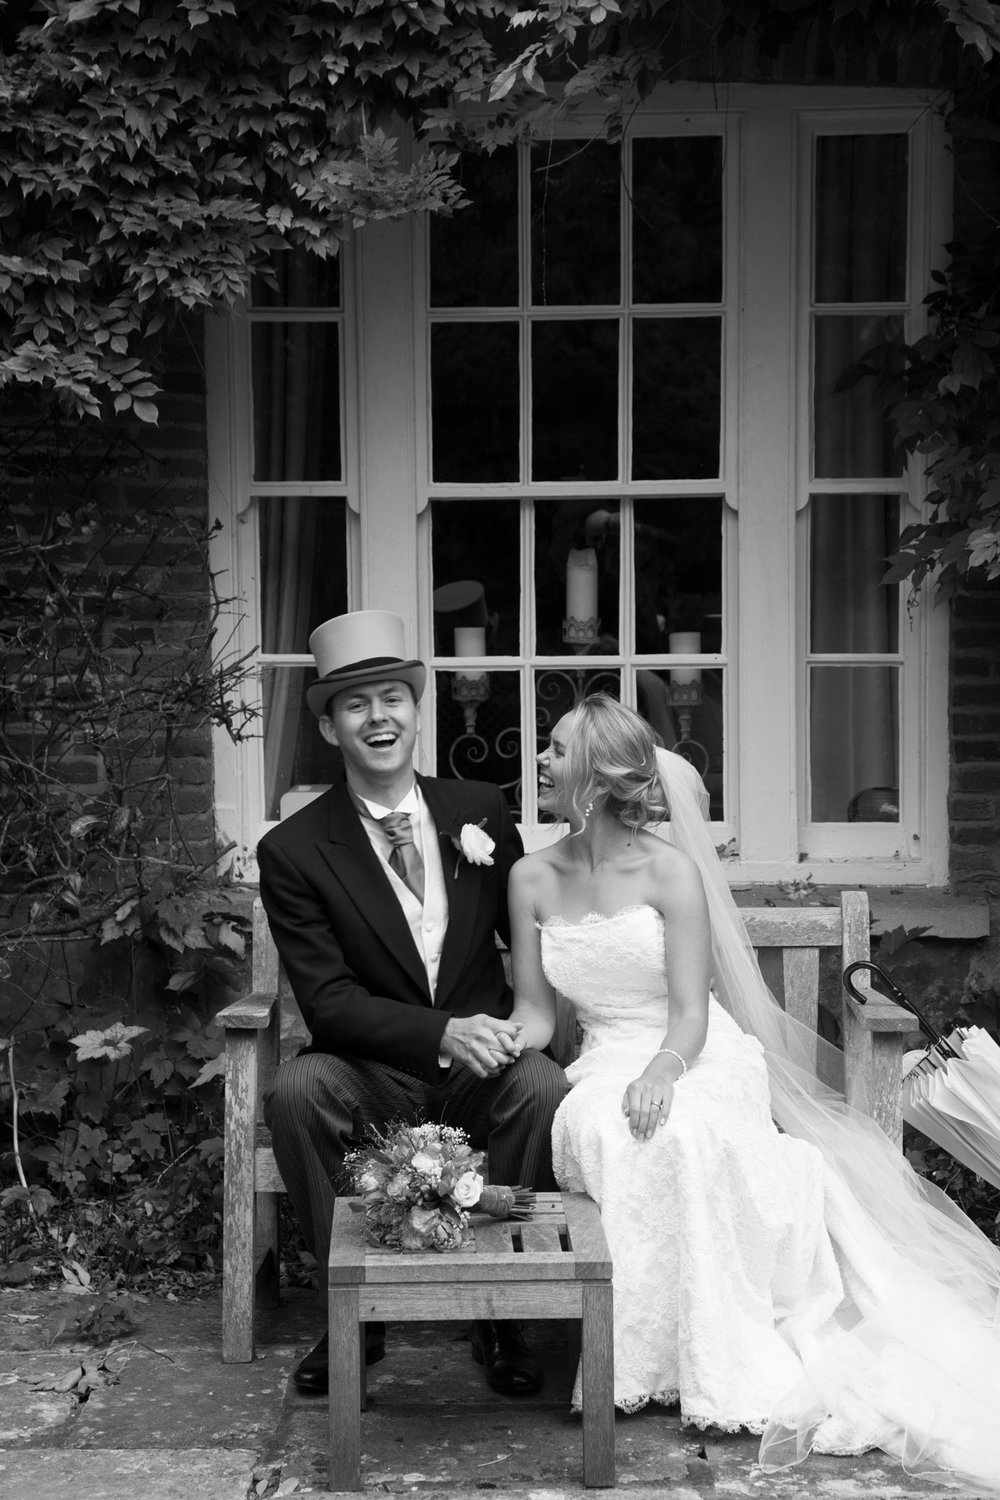 weddings-couples-love-photographer-oxford-london-jonathan-self-photography-81.jpg